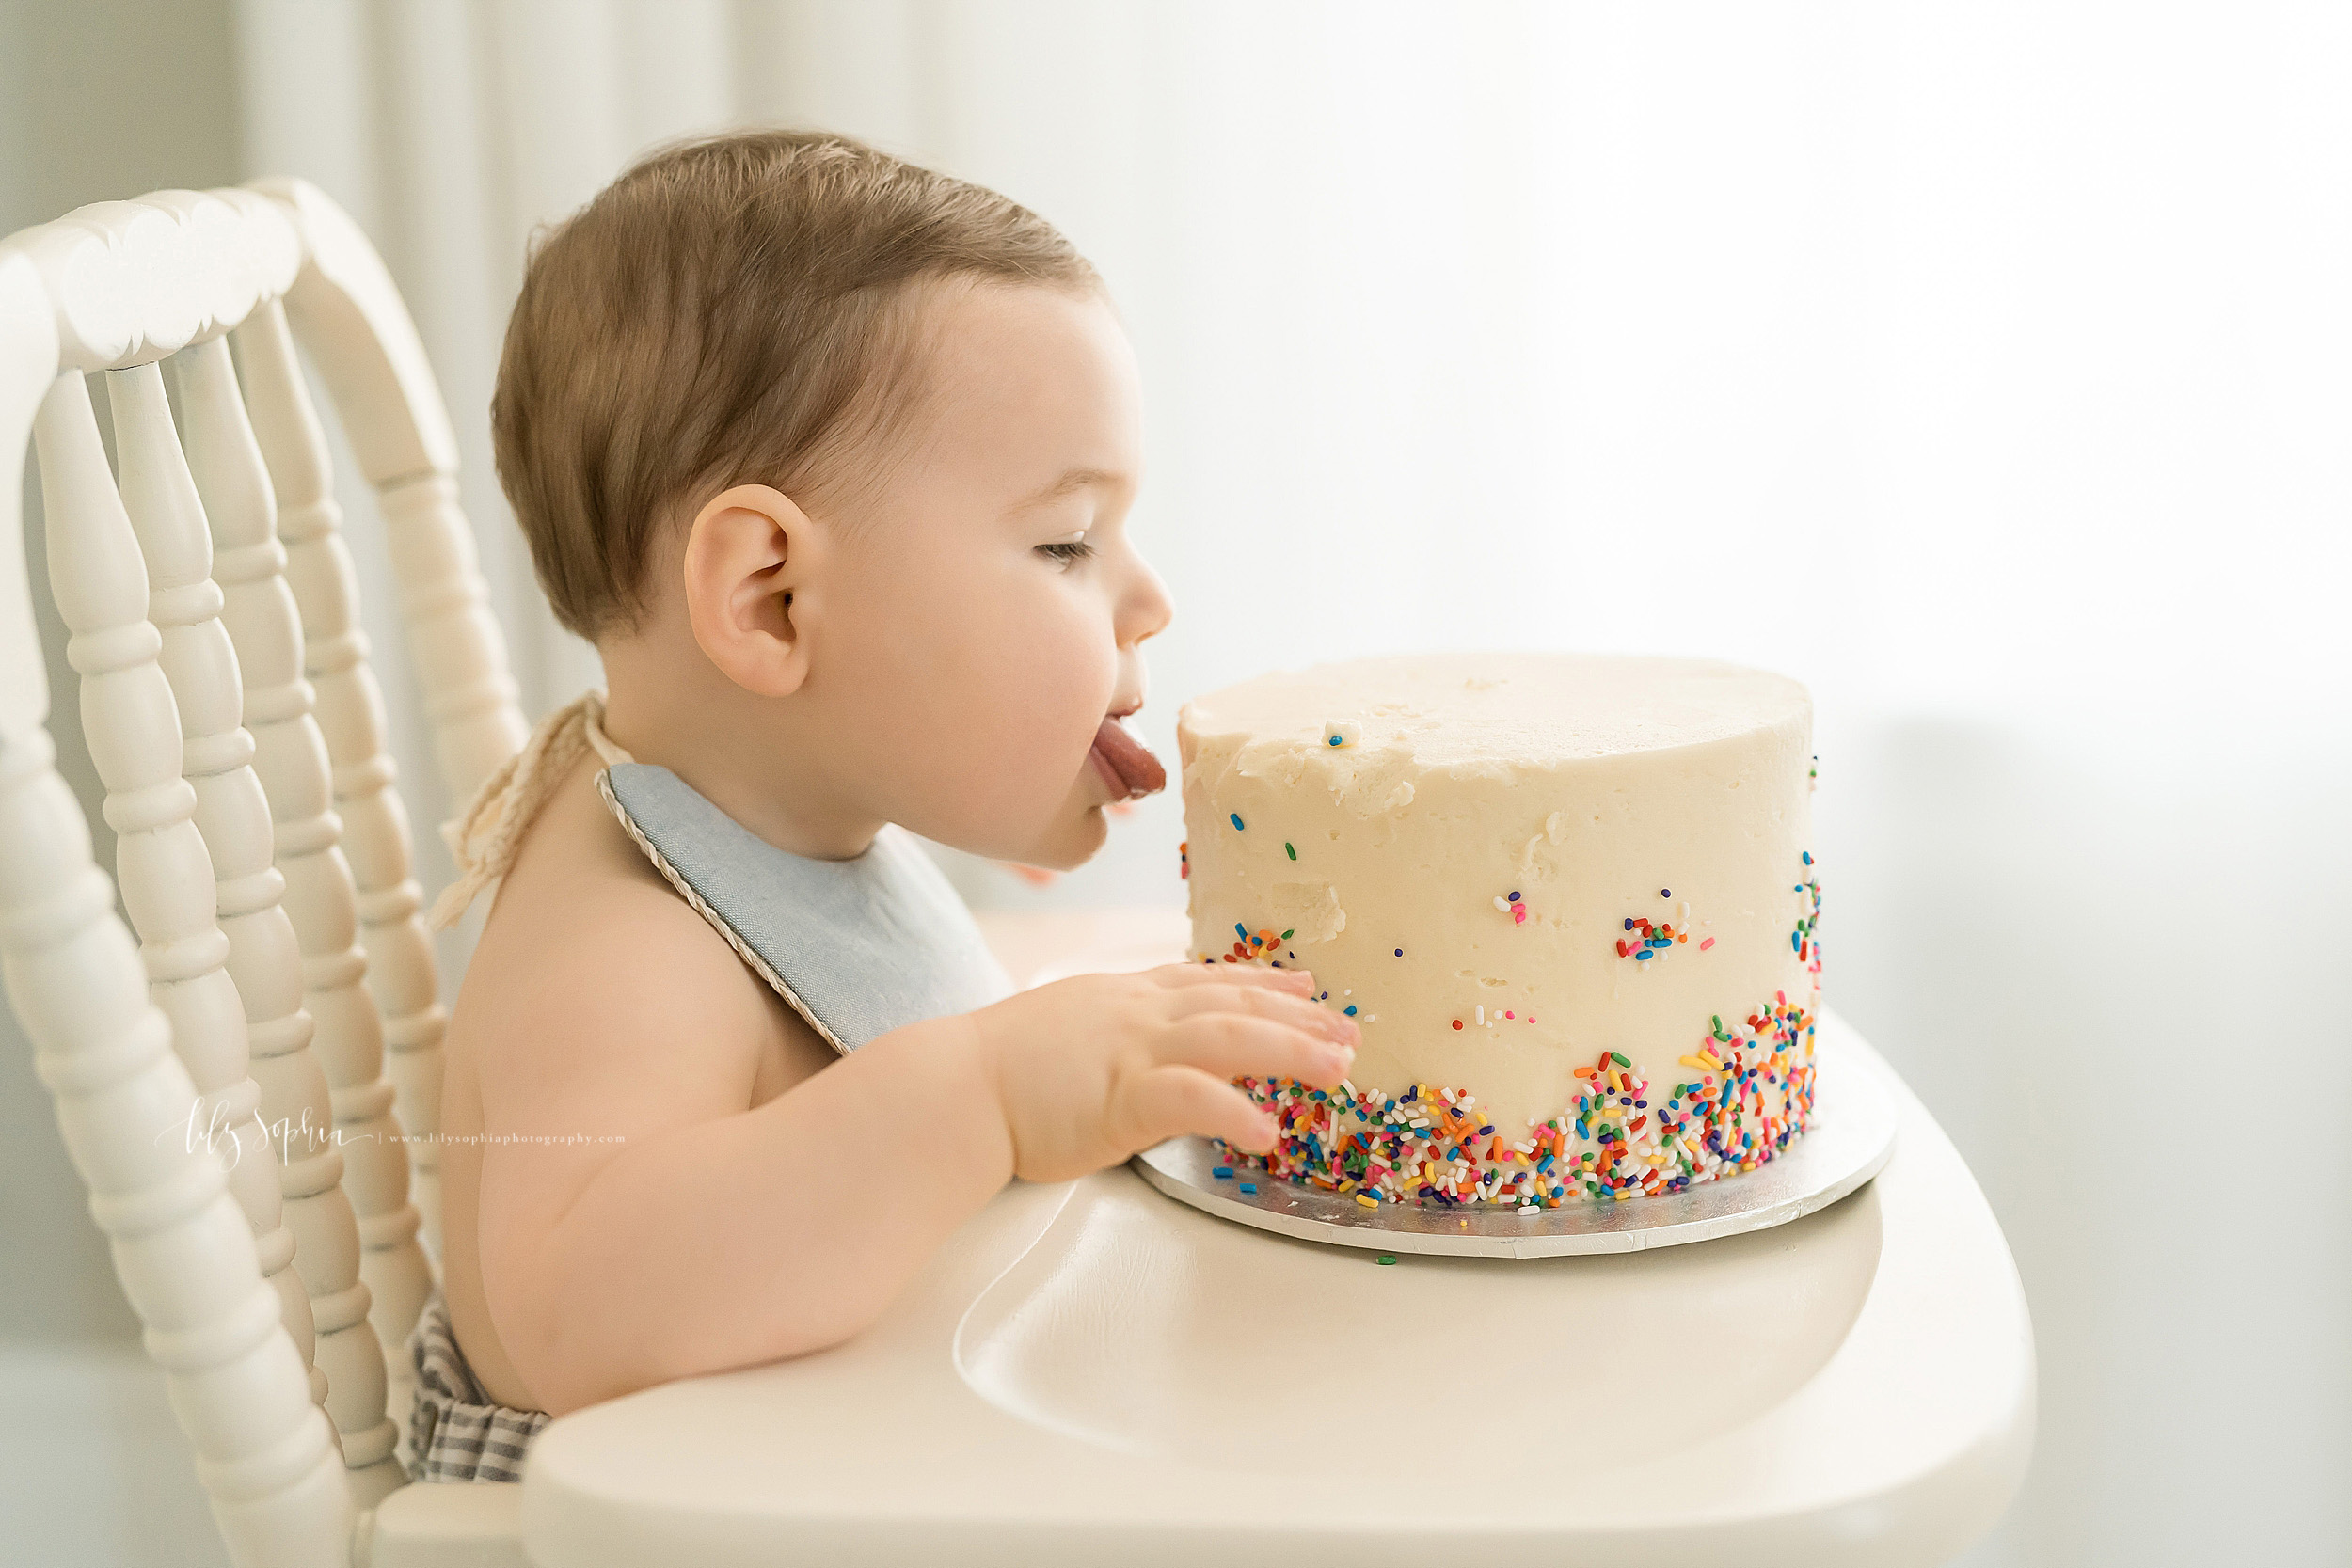 Milestone photo of a one year old boy sitting in an antique high chair in an Atlanta natural light studio as he sticks his tongue out to taste his birthday cake.